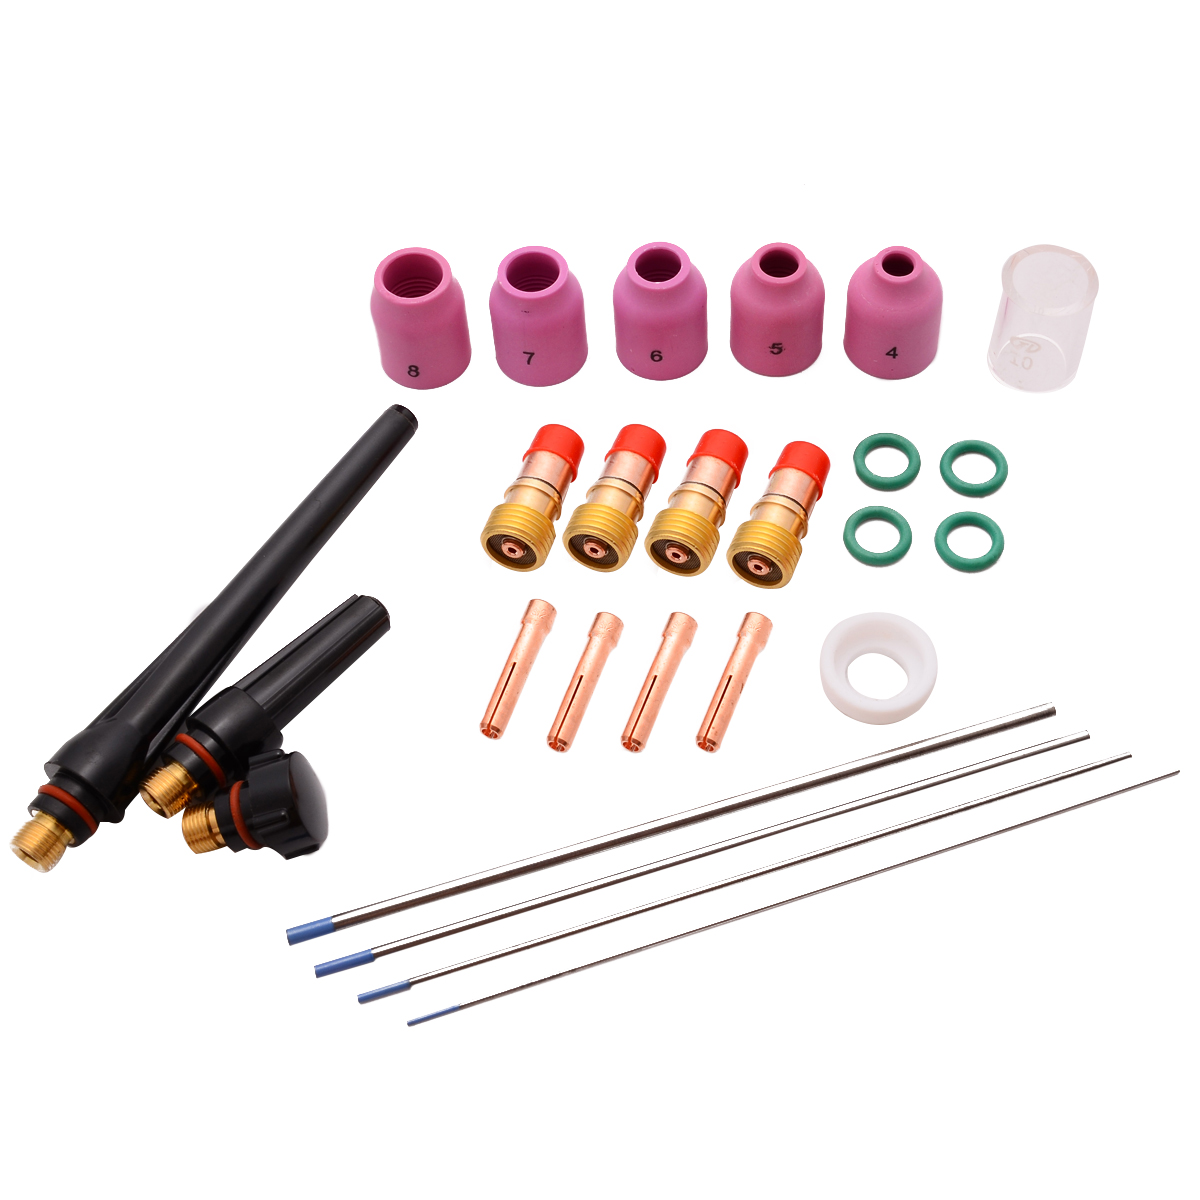 26pcs Durable TIG Gas Lens Kit Nozzle Cup Tungsten Gas Lens WL20 Kit For TIG WP-17/18/26 Welding Torch